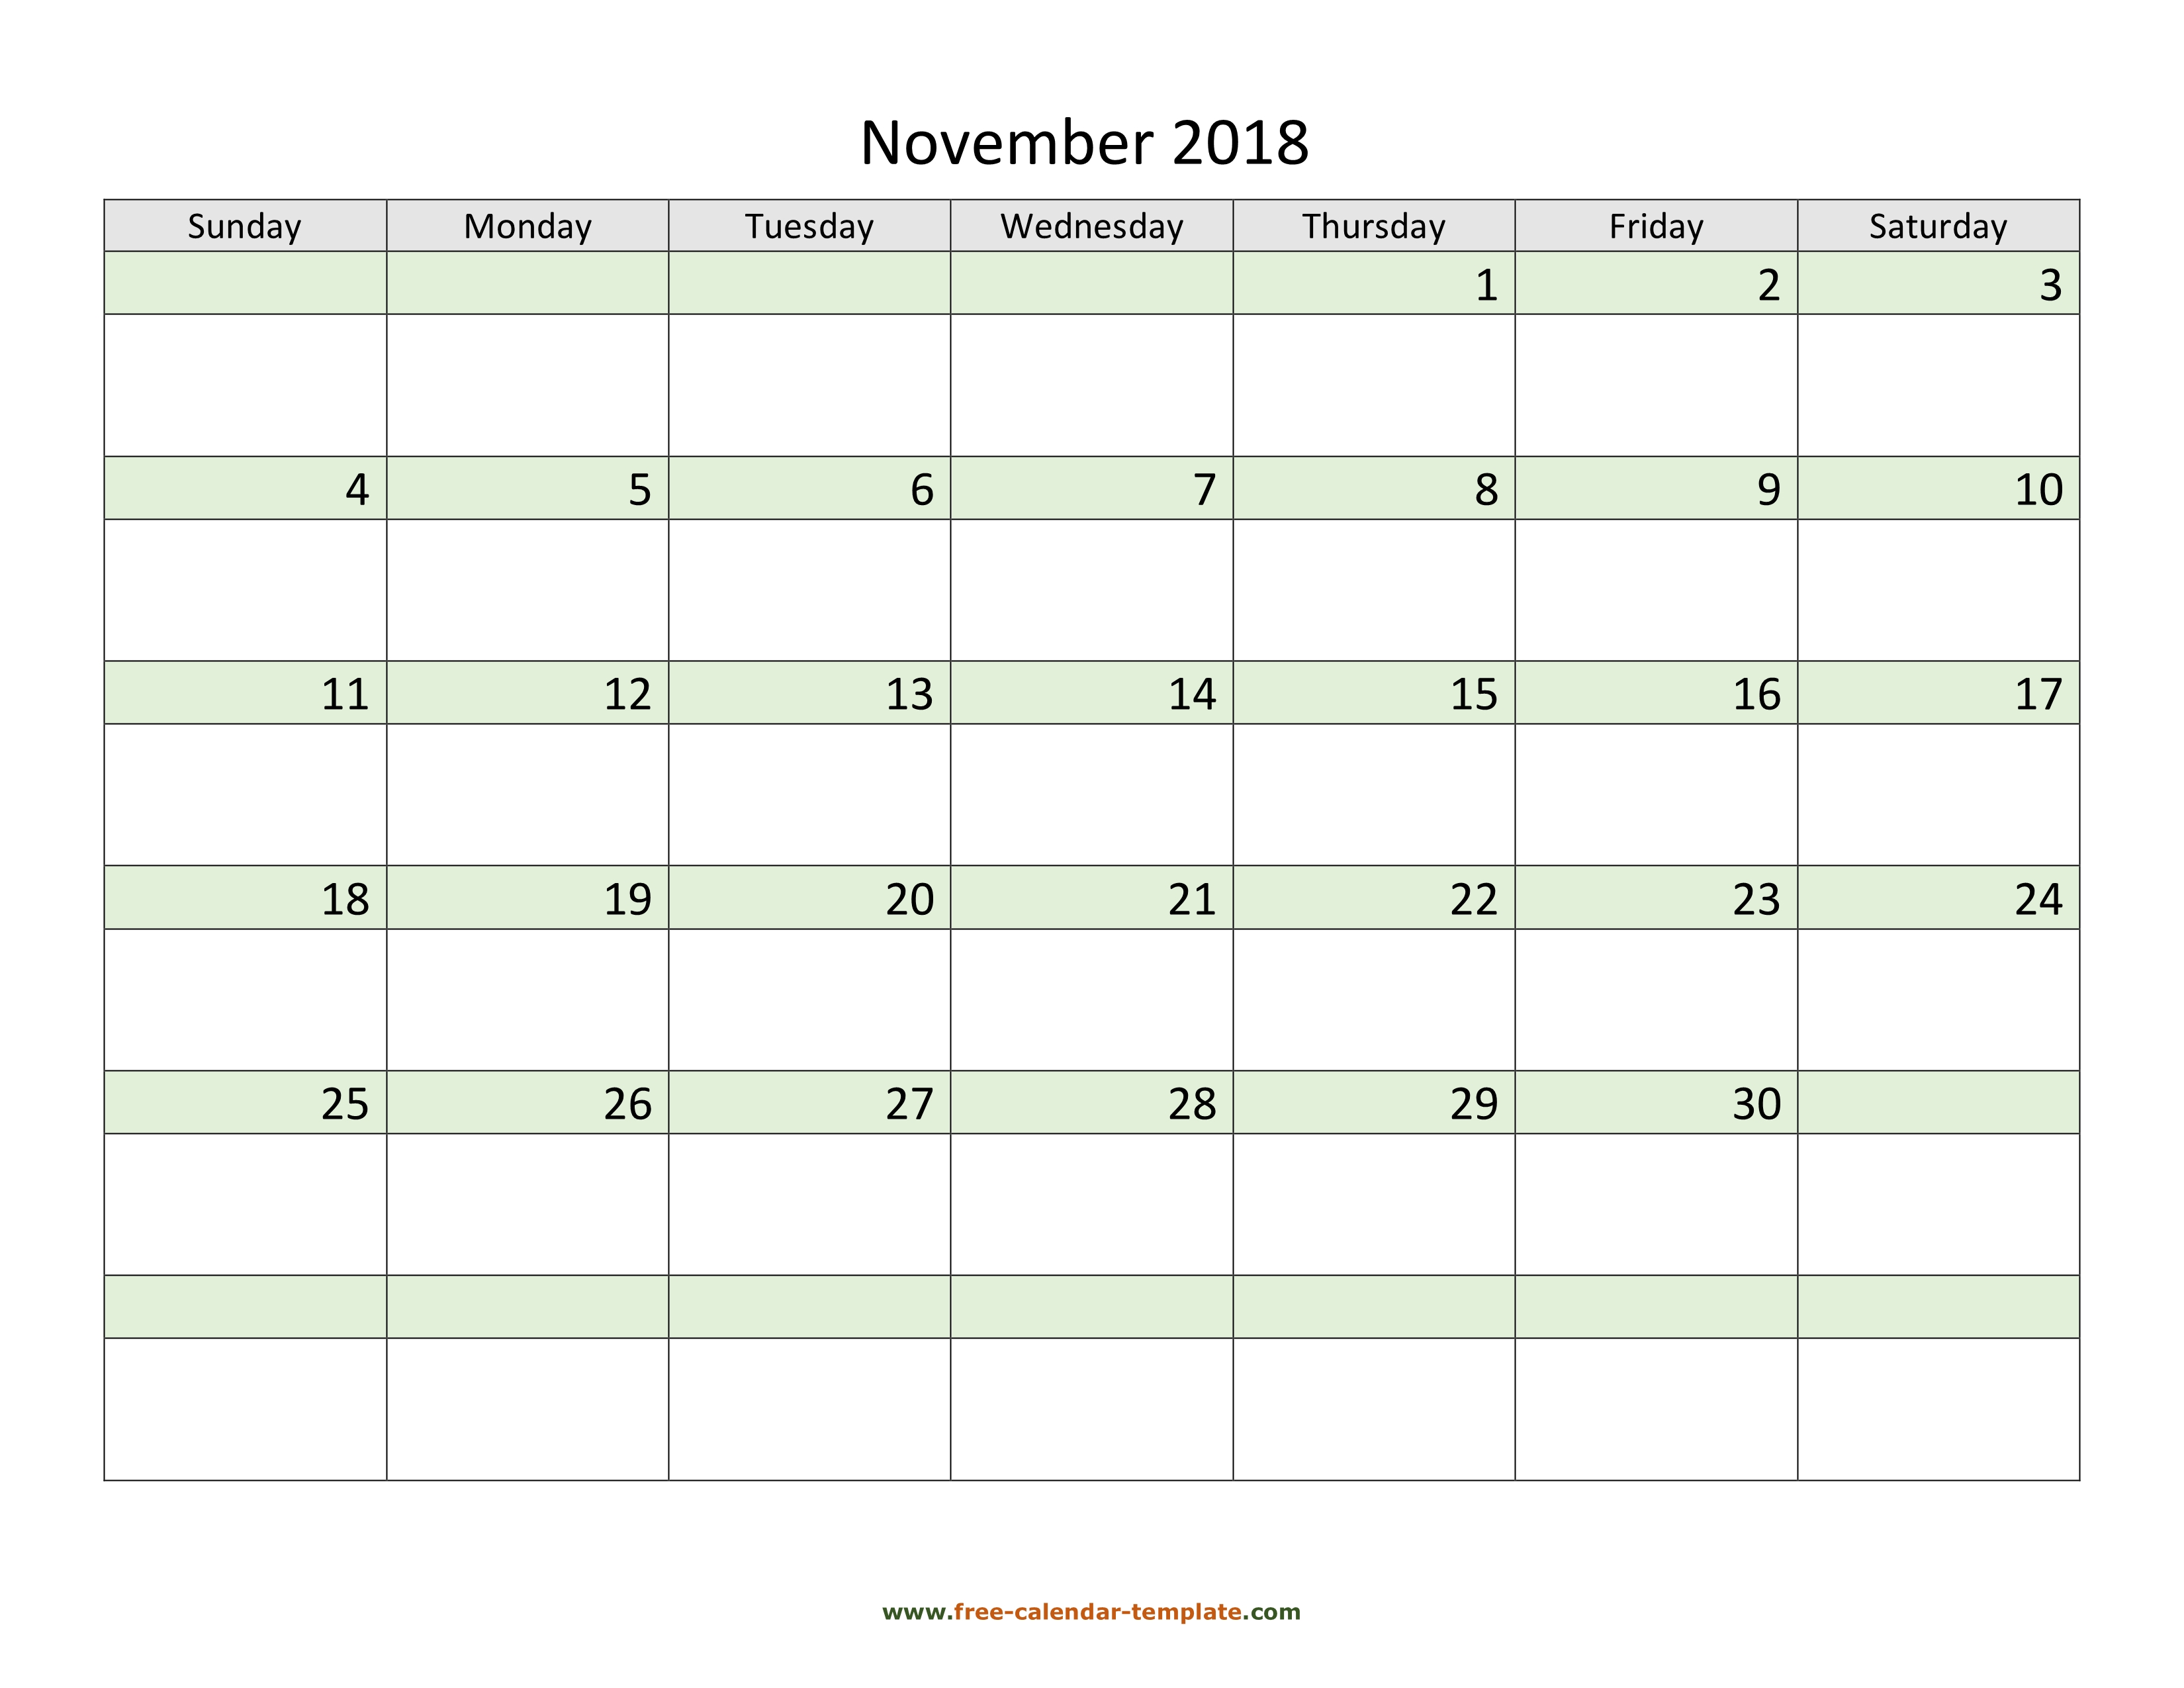 download free november 2018 calendar coloring on each day